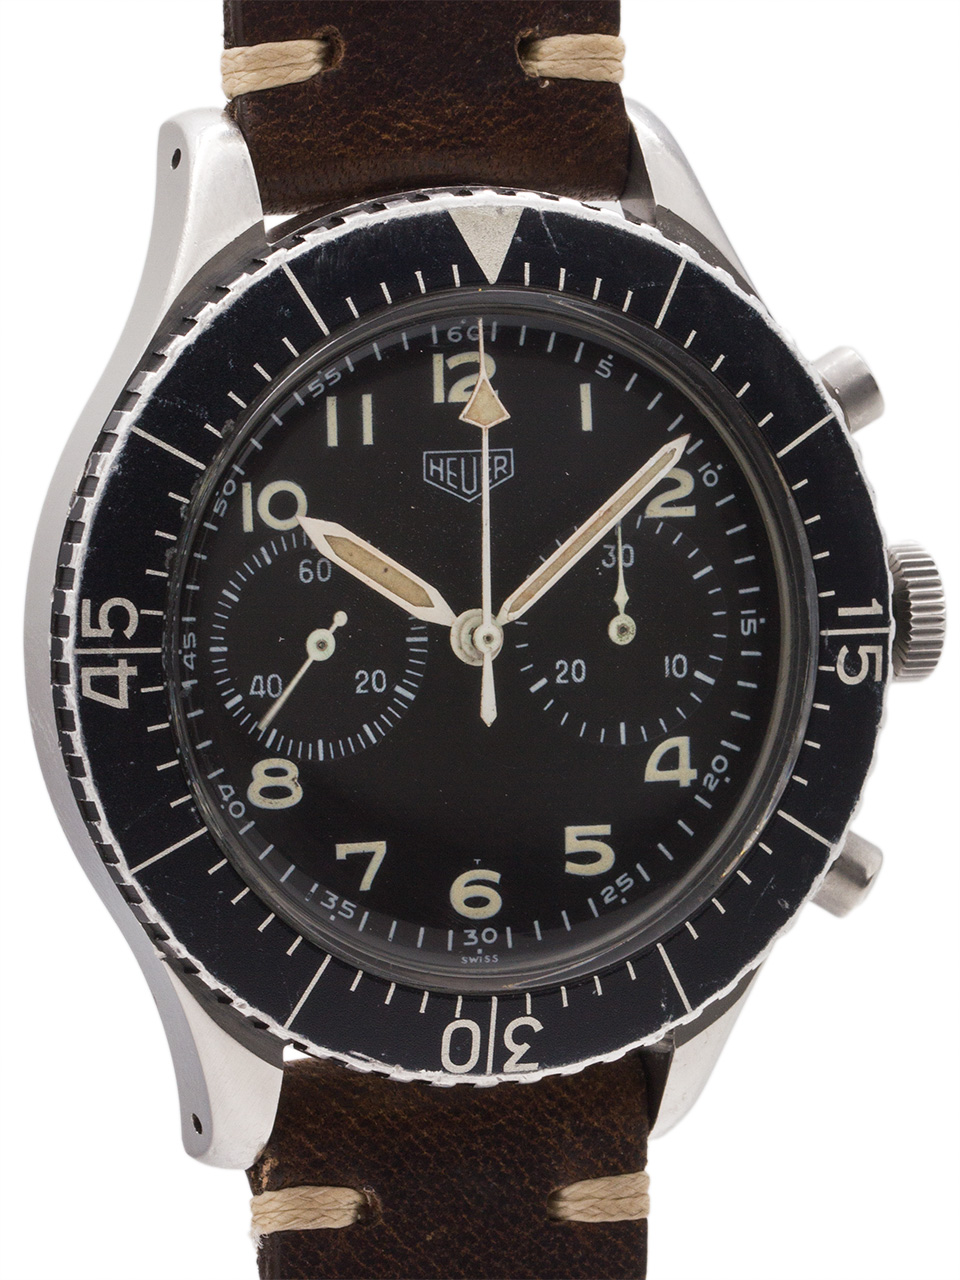 Heuer Bundeswehr Pilot's Flyback Chronograph circa 1960